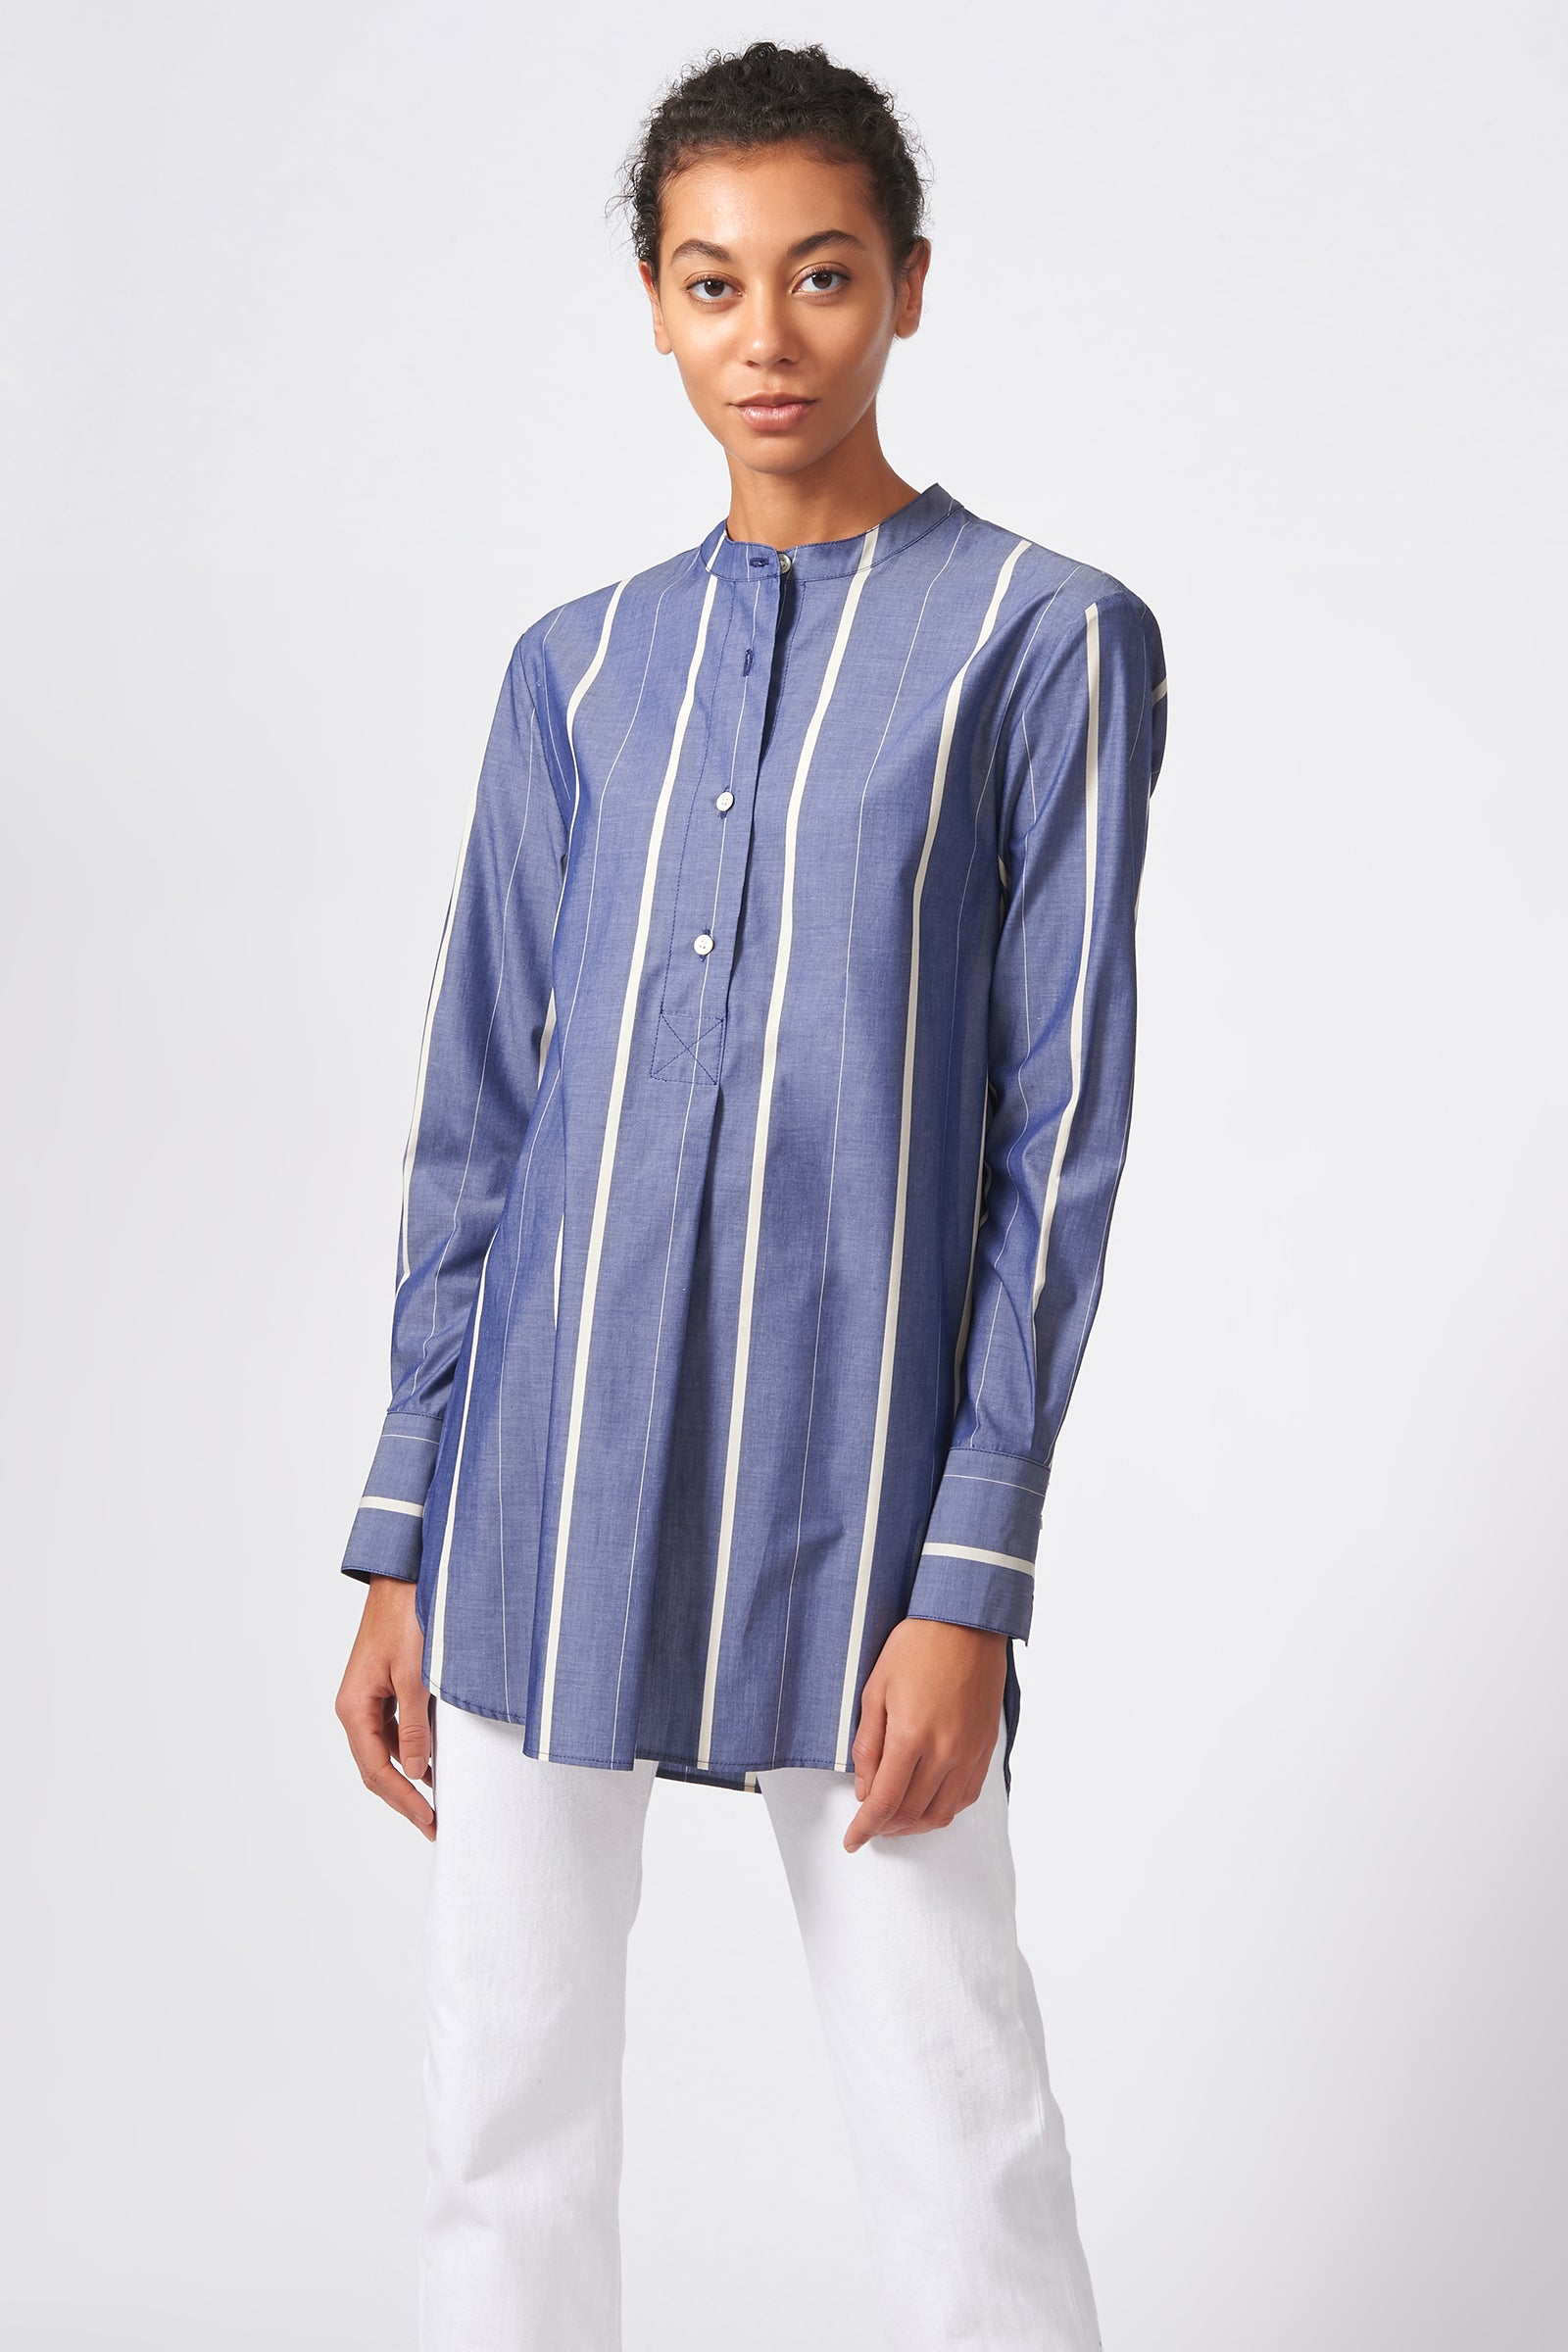 Kal Rieman Placket Front Tunic in Chambray Stripe on Model Front View